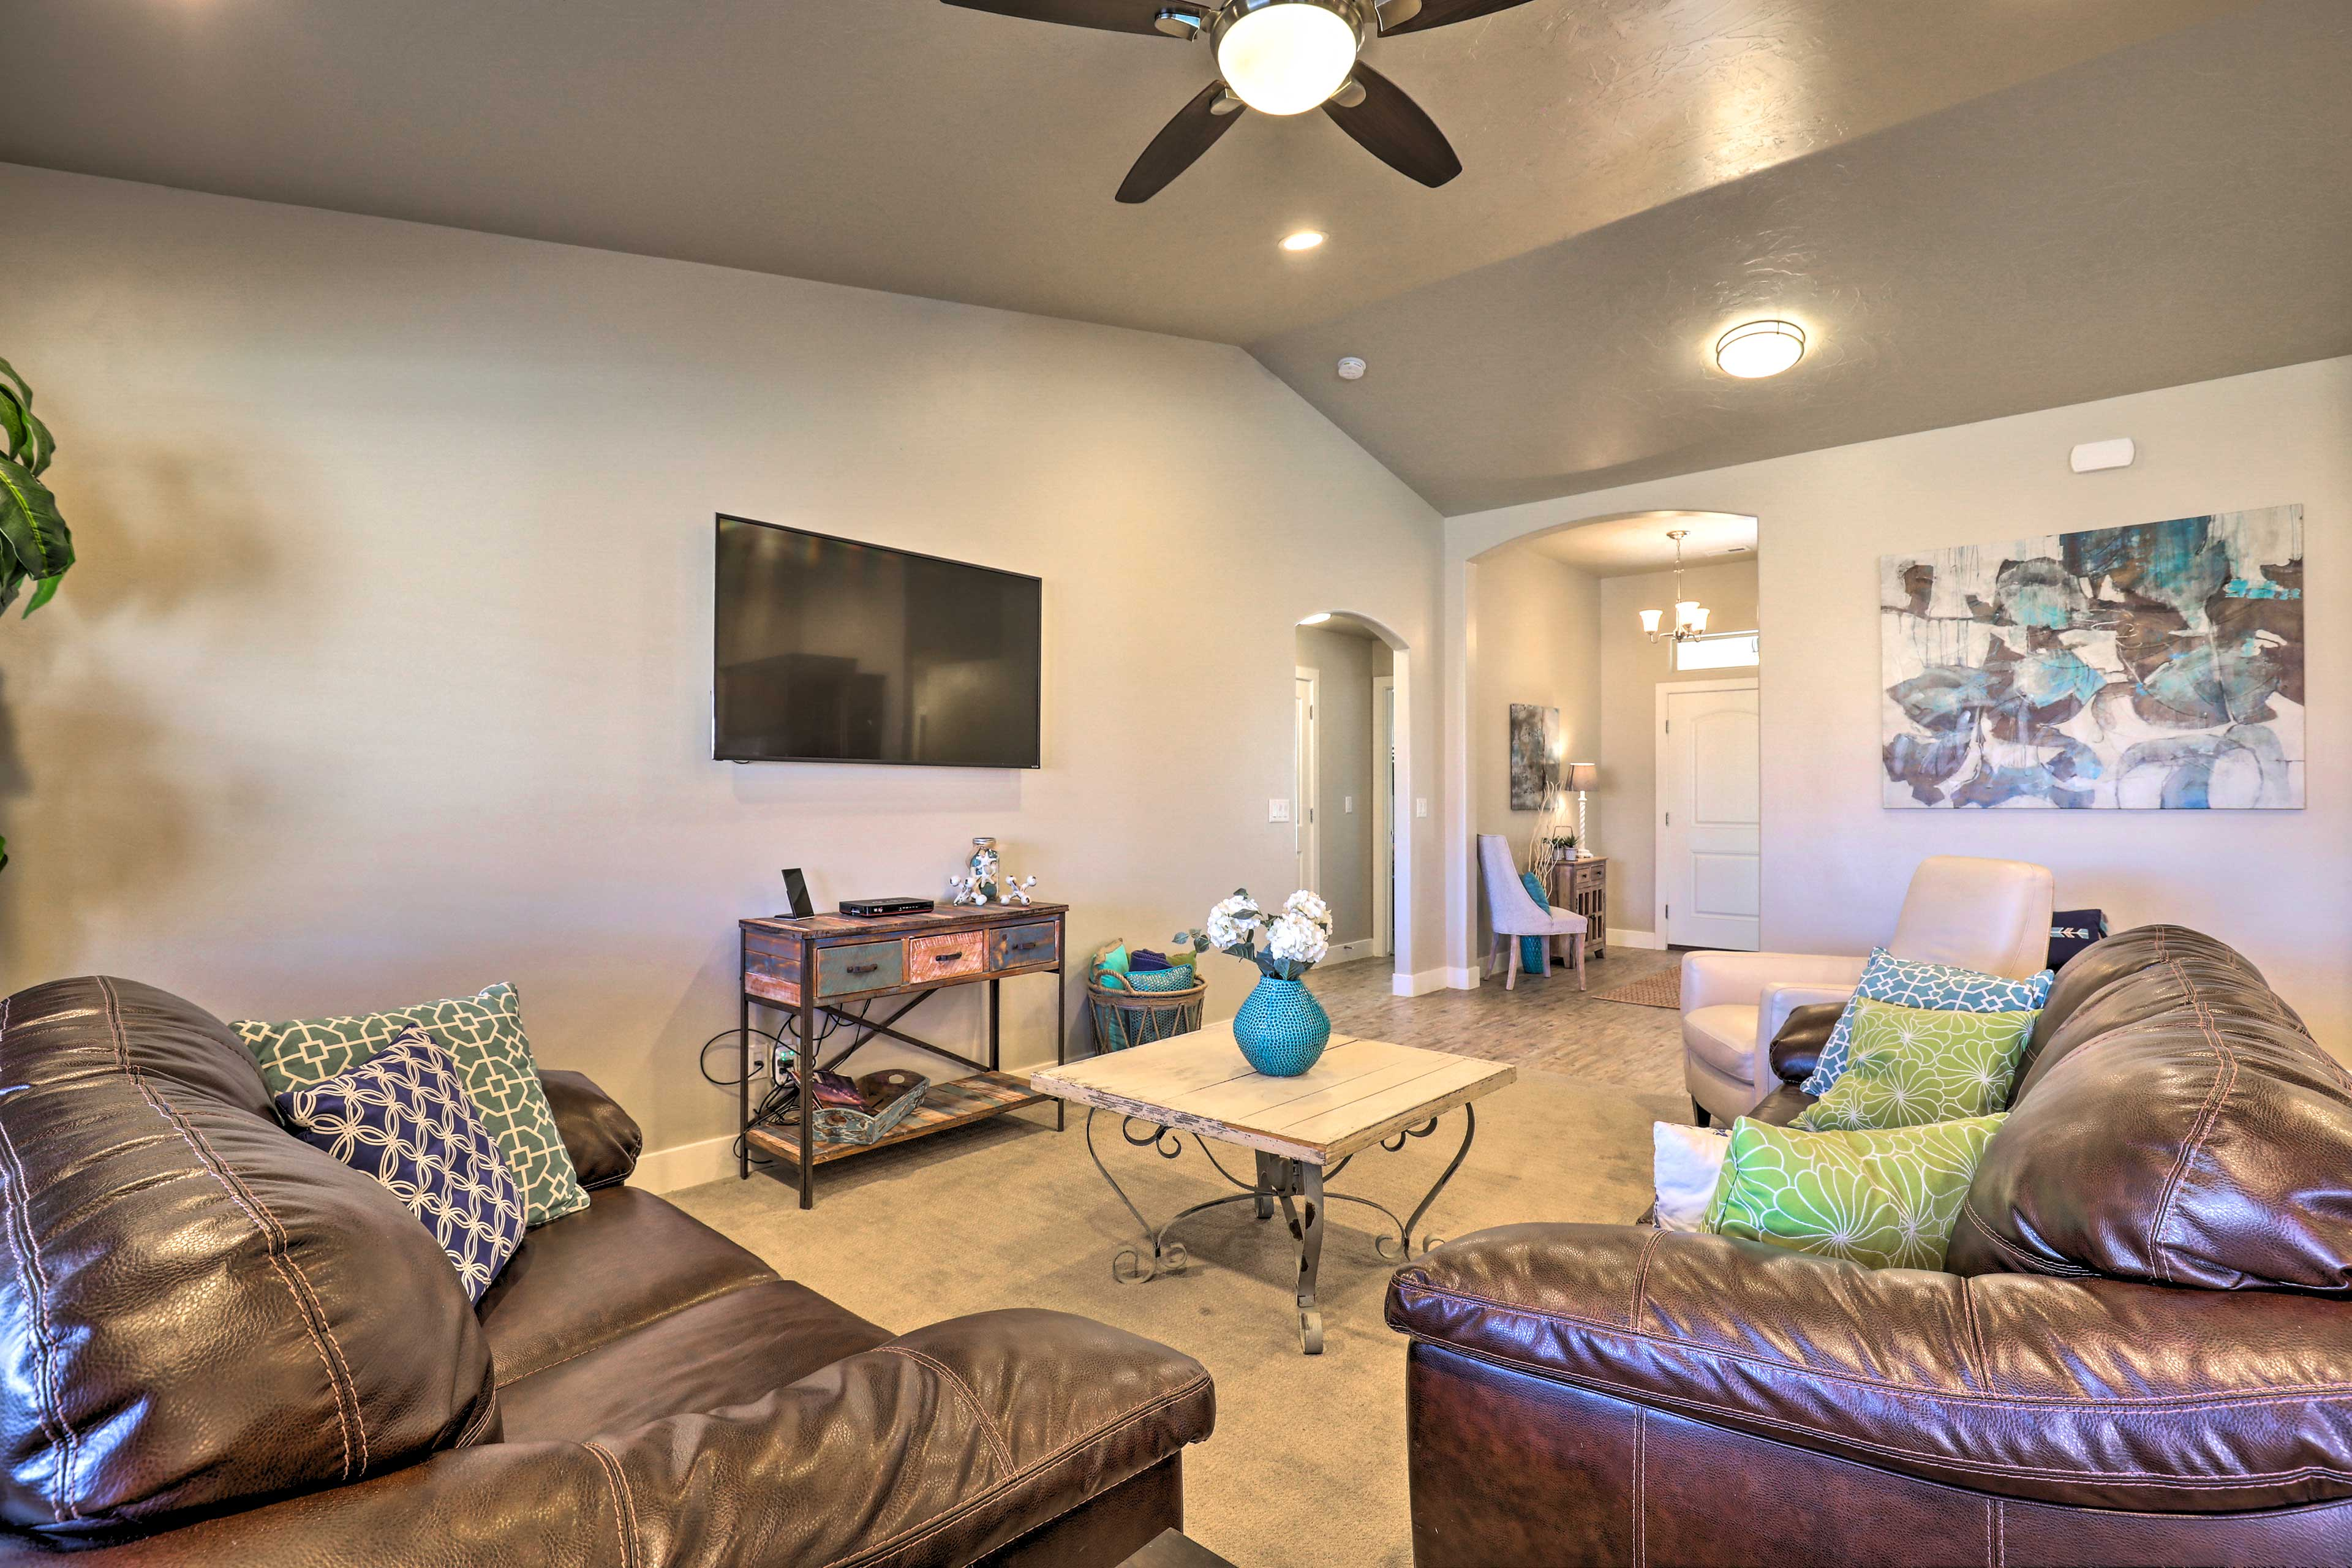 Grab a seat on the leather sofas and watch a movie on the flat-screen cable TV.